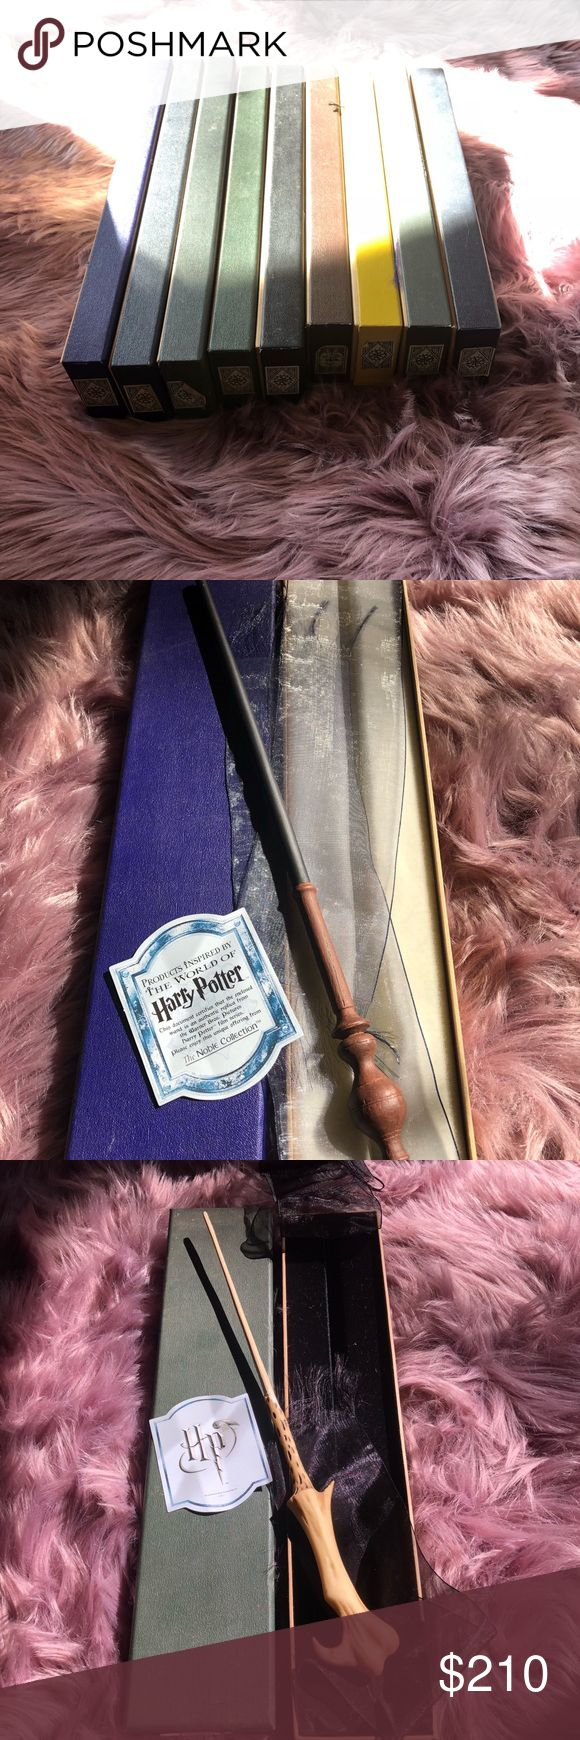 Warner Bros. Harry Potter wand collection $30/wand A) Voldemort's wand B) Harry Potter's wand C) Draco Malfoy's wand D) Ron Weasley's wand E) Professor Snape's wand F) Hermione Granger's wand G) Minerva Mcgonagall's wand Warner Brothers Other